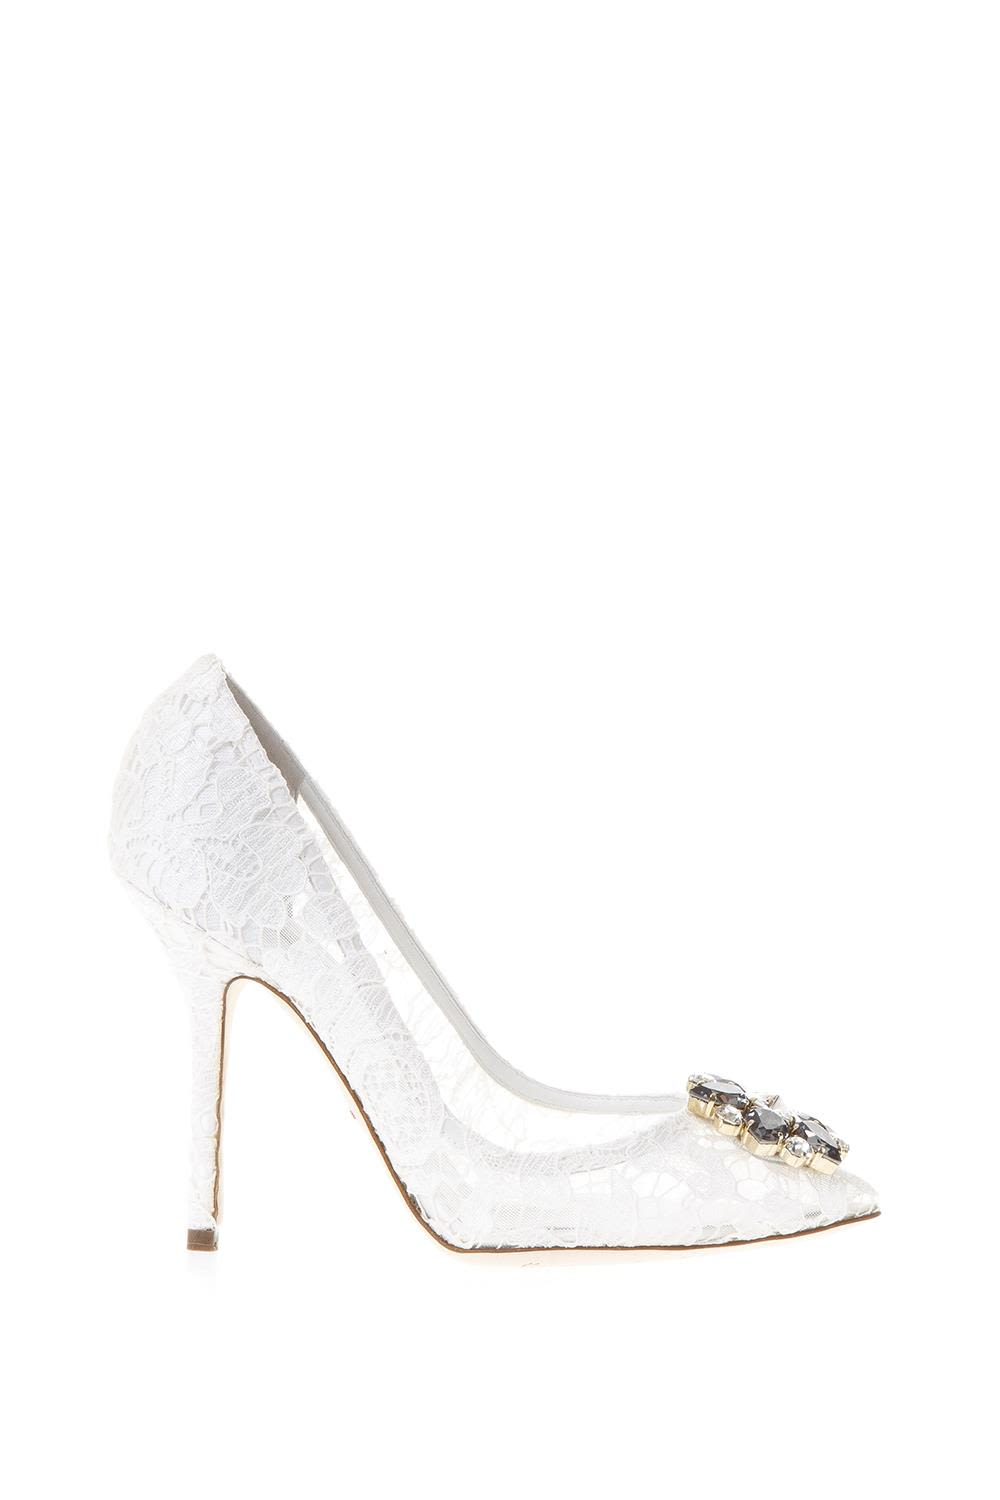 0f26ffd2731 Dolce   Gabbana Taormina Lace Open Toe Court Shoes With Embroidery - White  ...